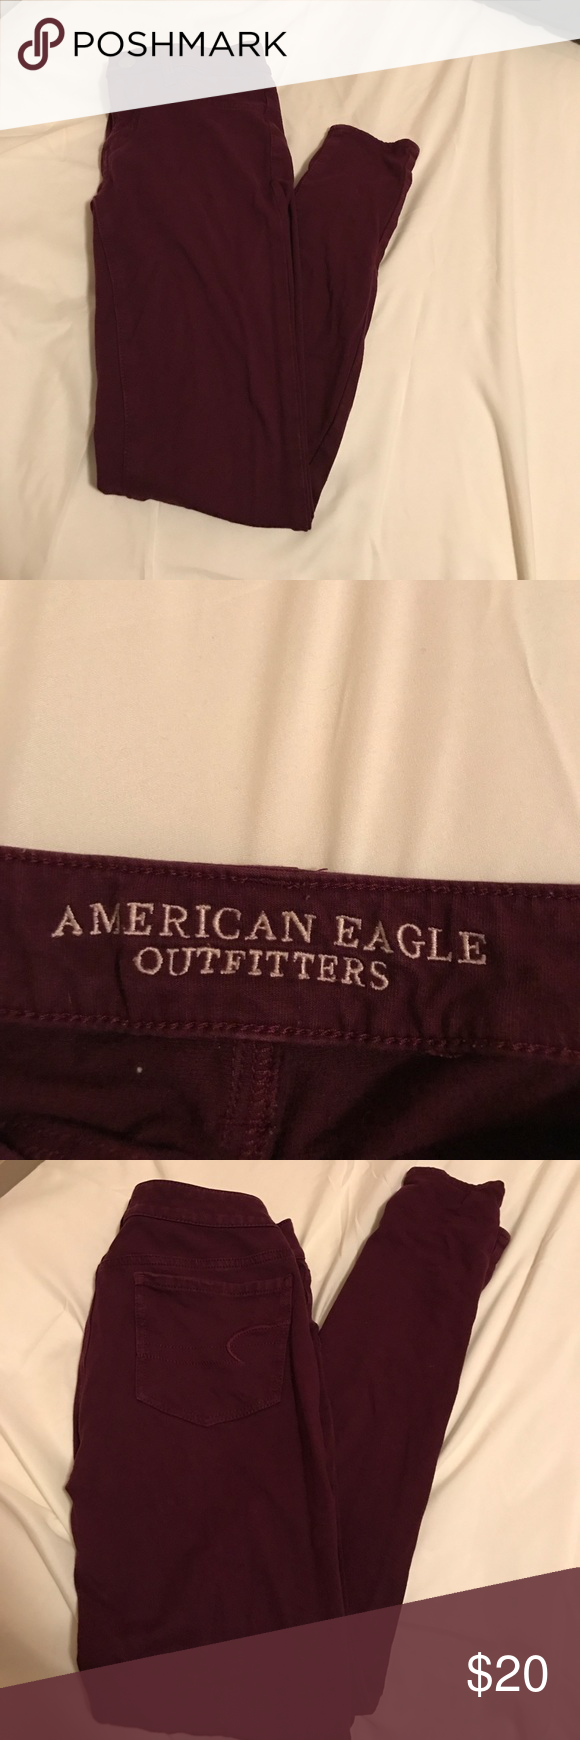 American Eagle Super Stretch Jeggings Worn a few times. In good condition. Super comfortable. Size 4/regular. Maroon. American Eagle Outfitters Jeans Skinny